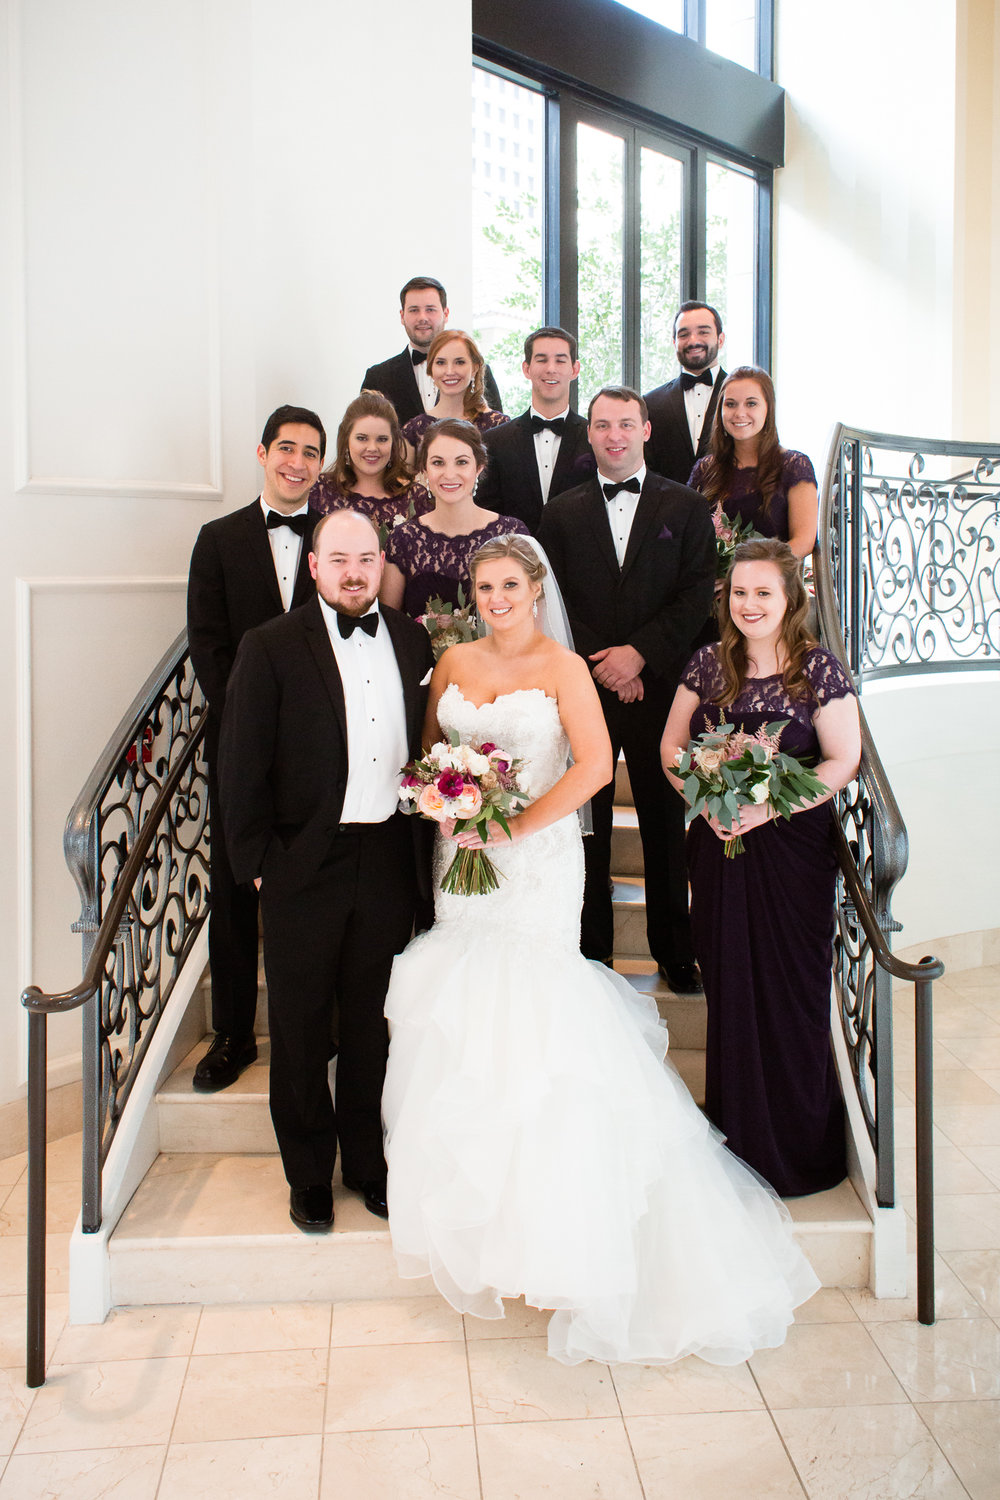 Brantley Wedding CLR Web Resolution-86.jpg